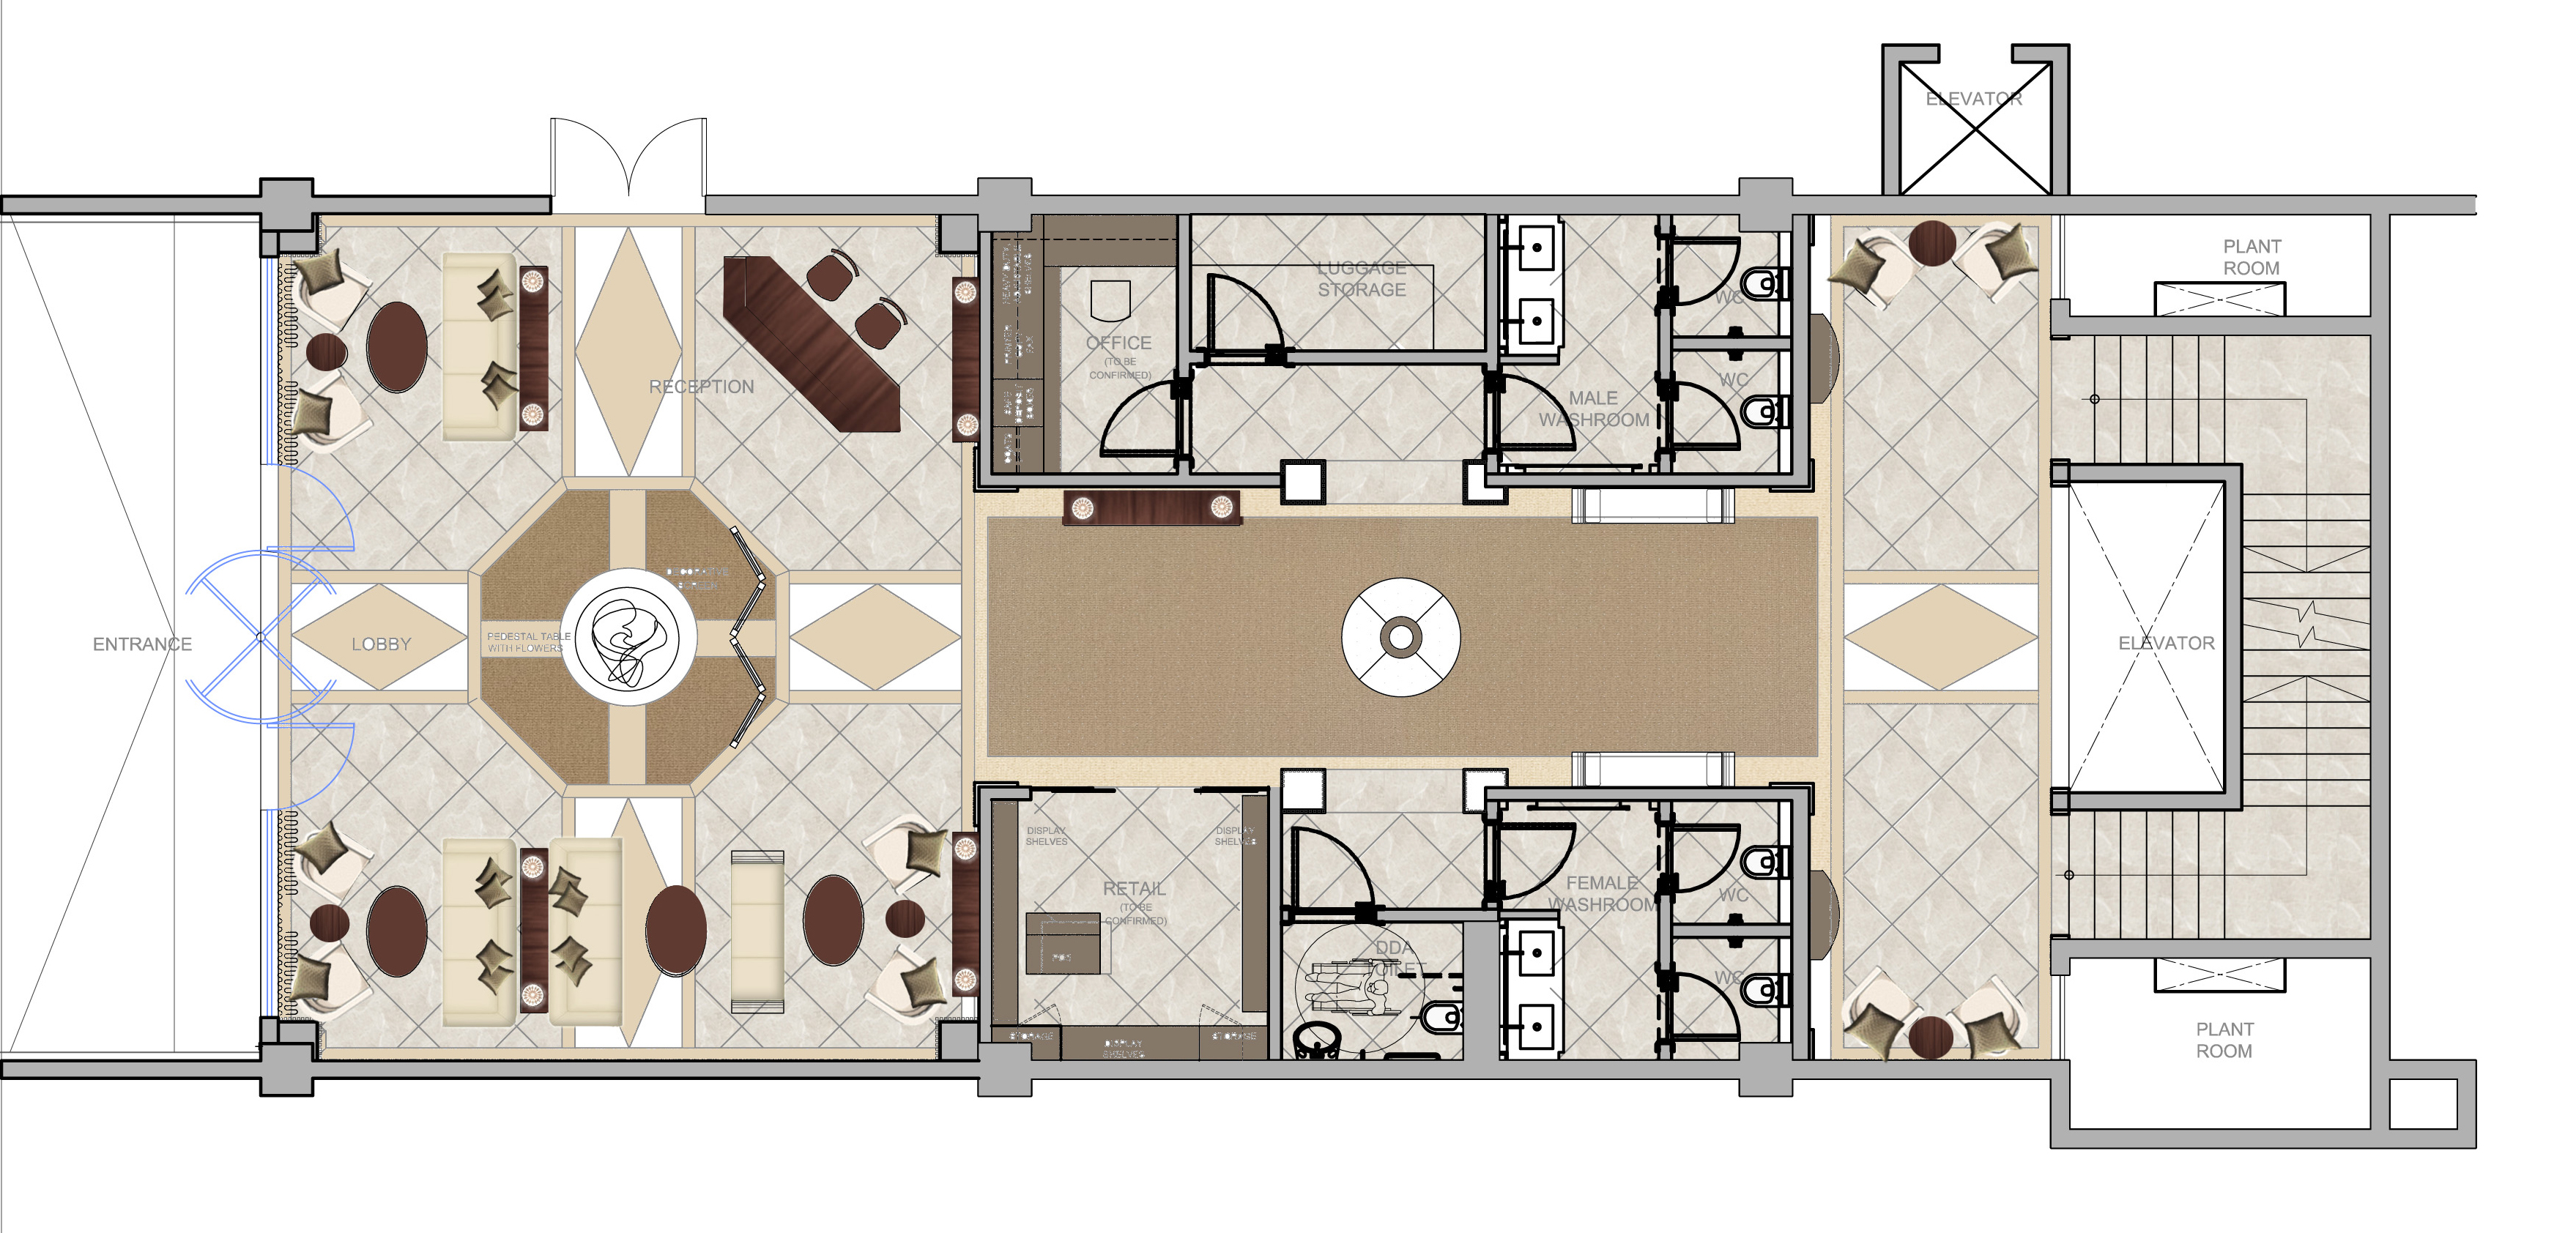 ground floor plan 2.jpg